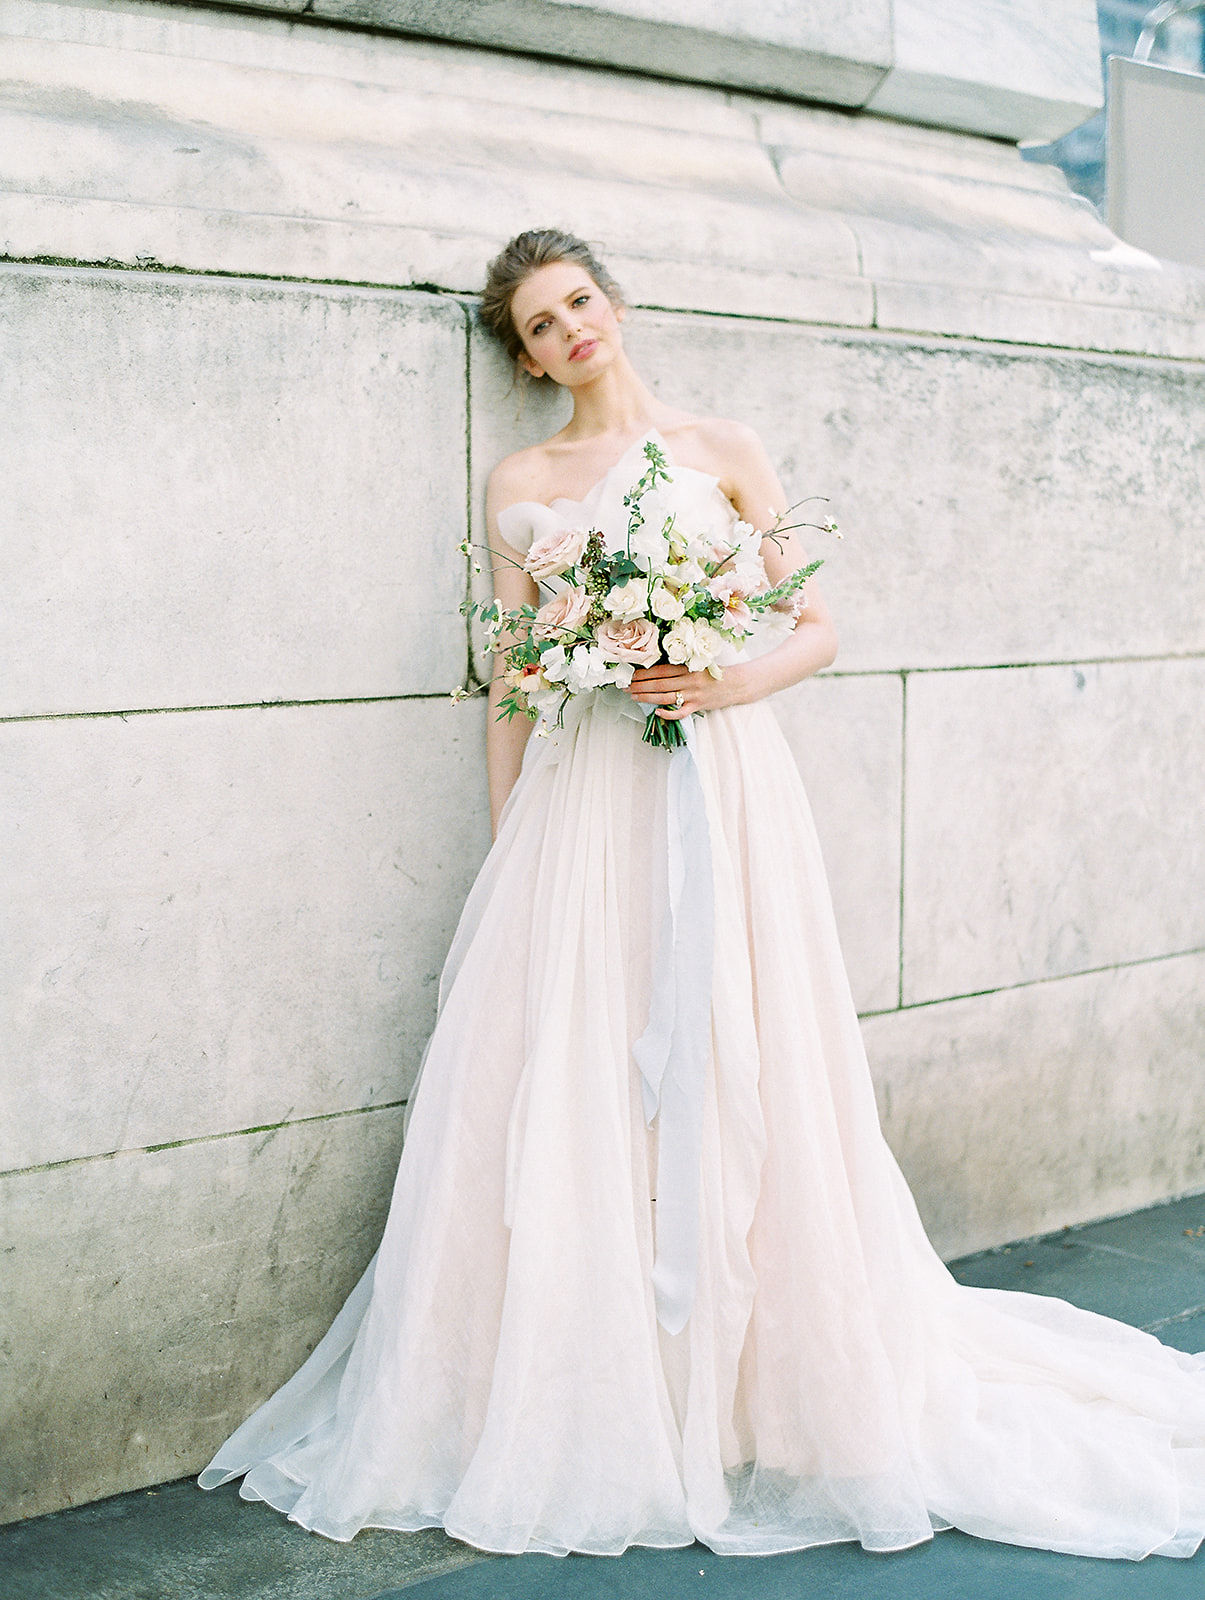 alla prima draped linen wedding gown at new york public library7.jpg